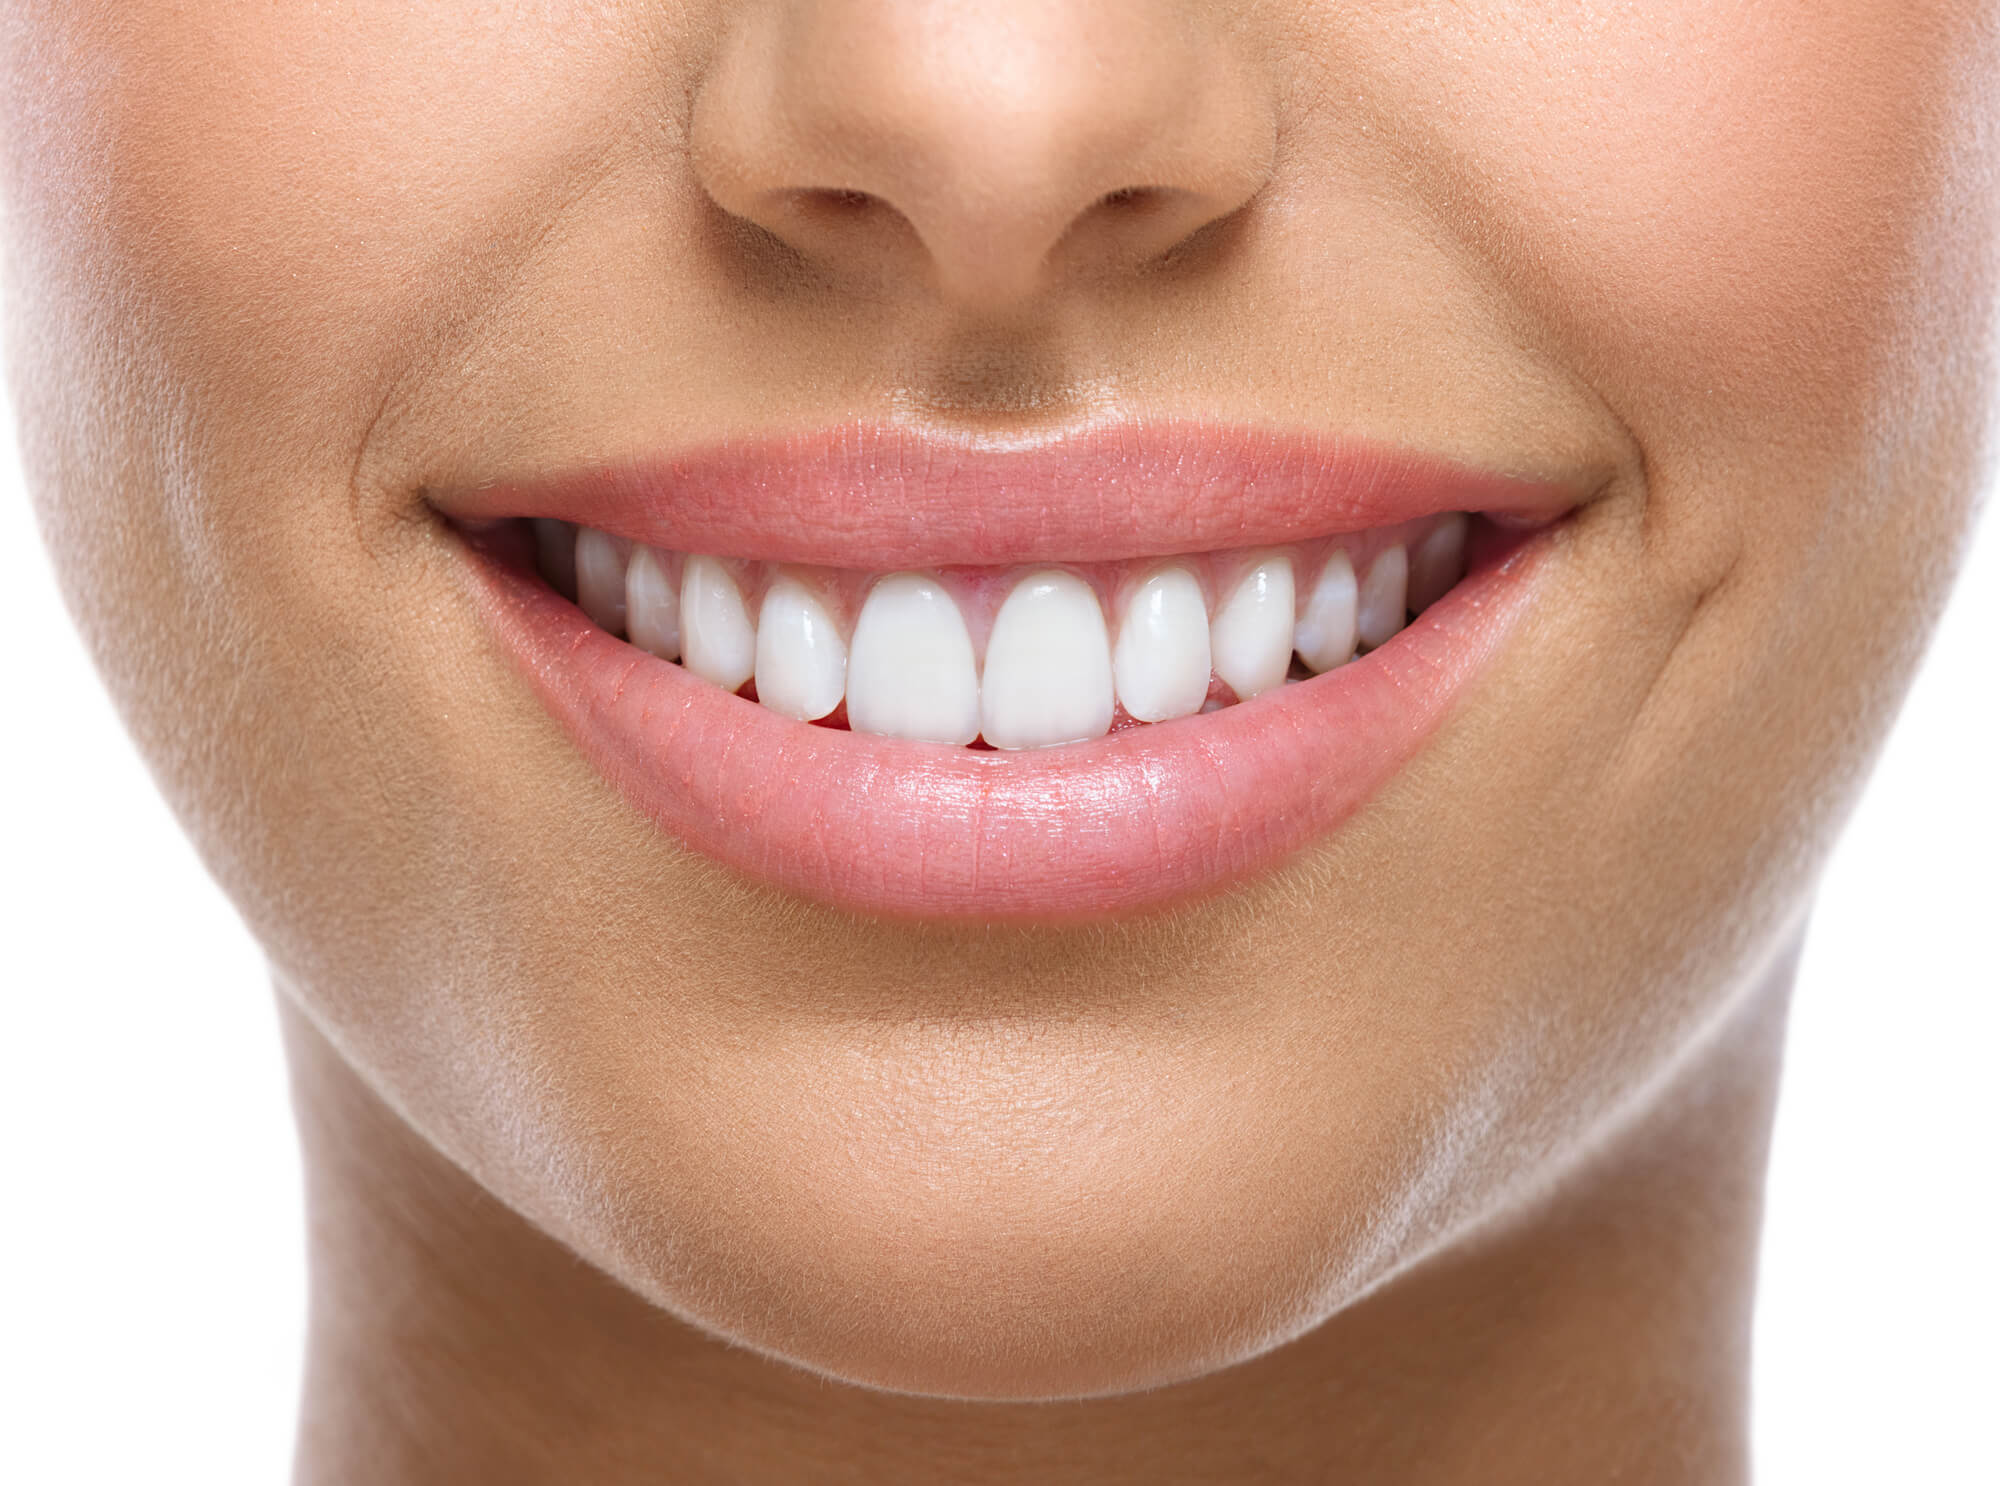 surgical dental implants in Plano